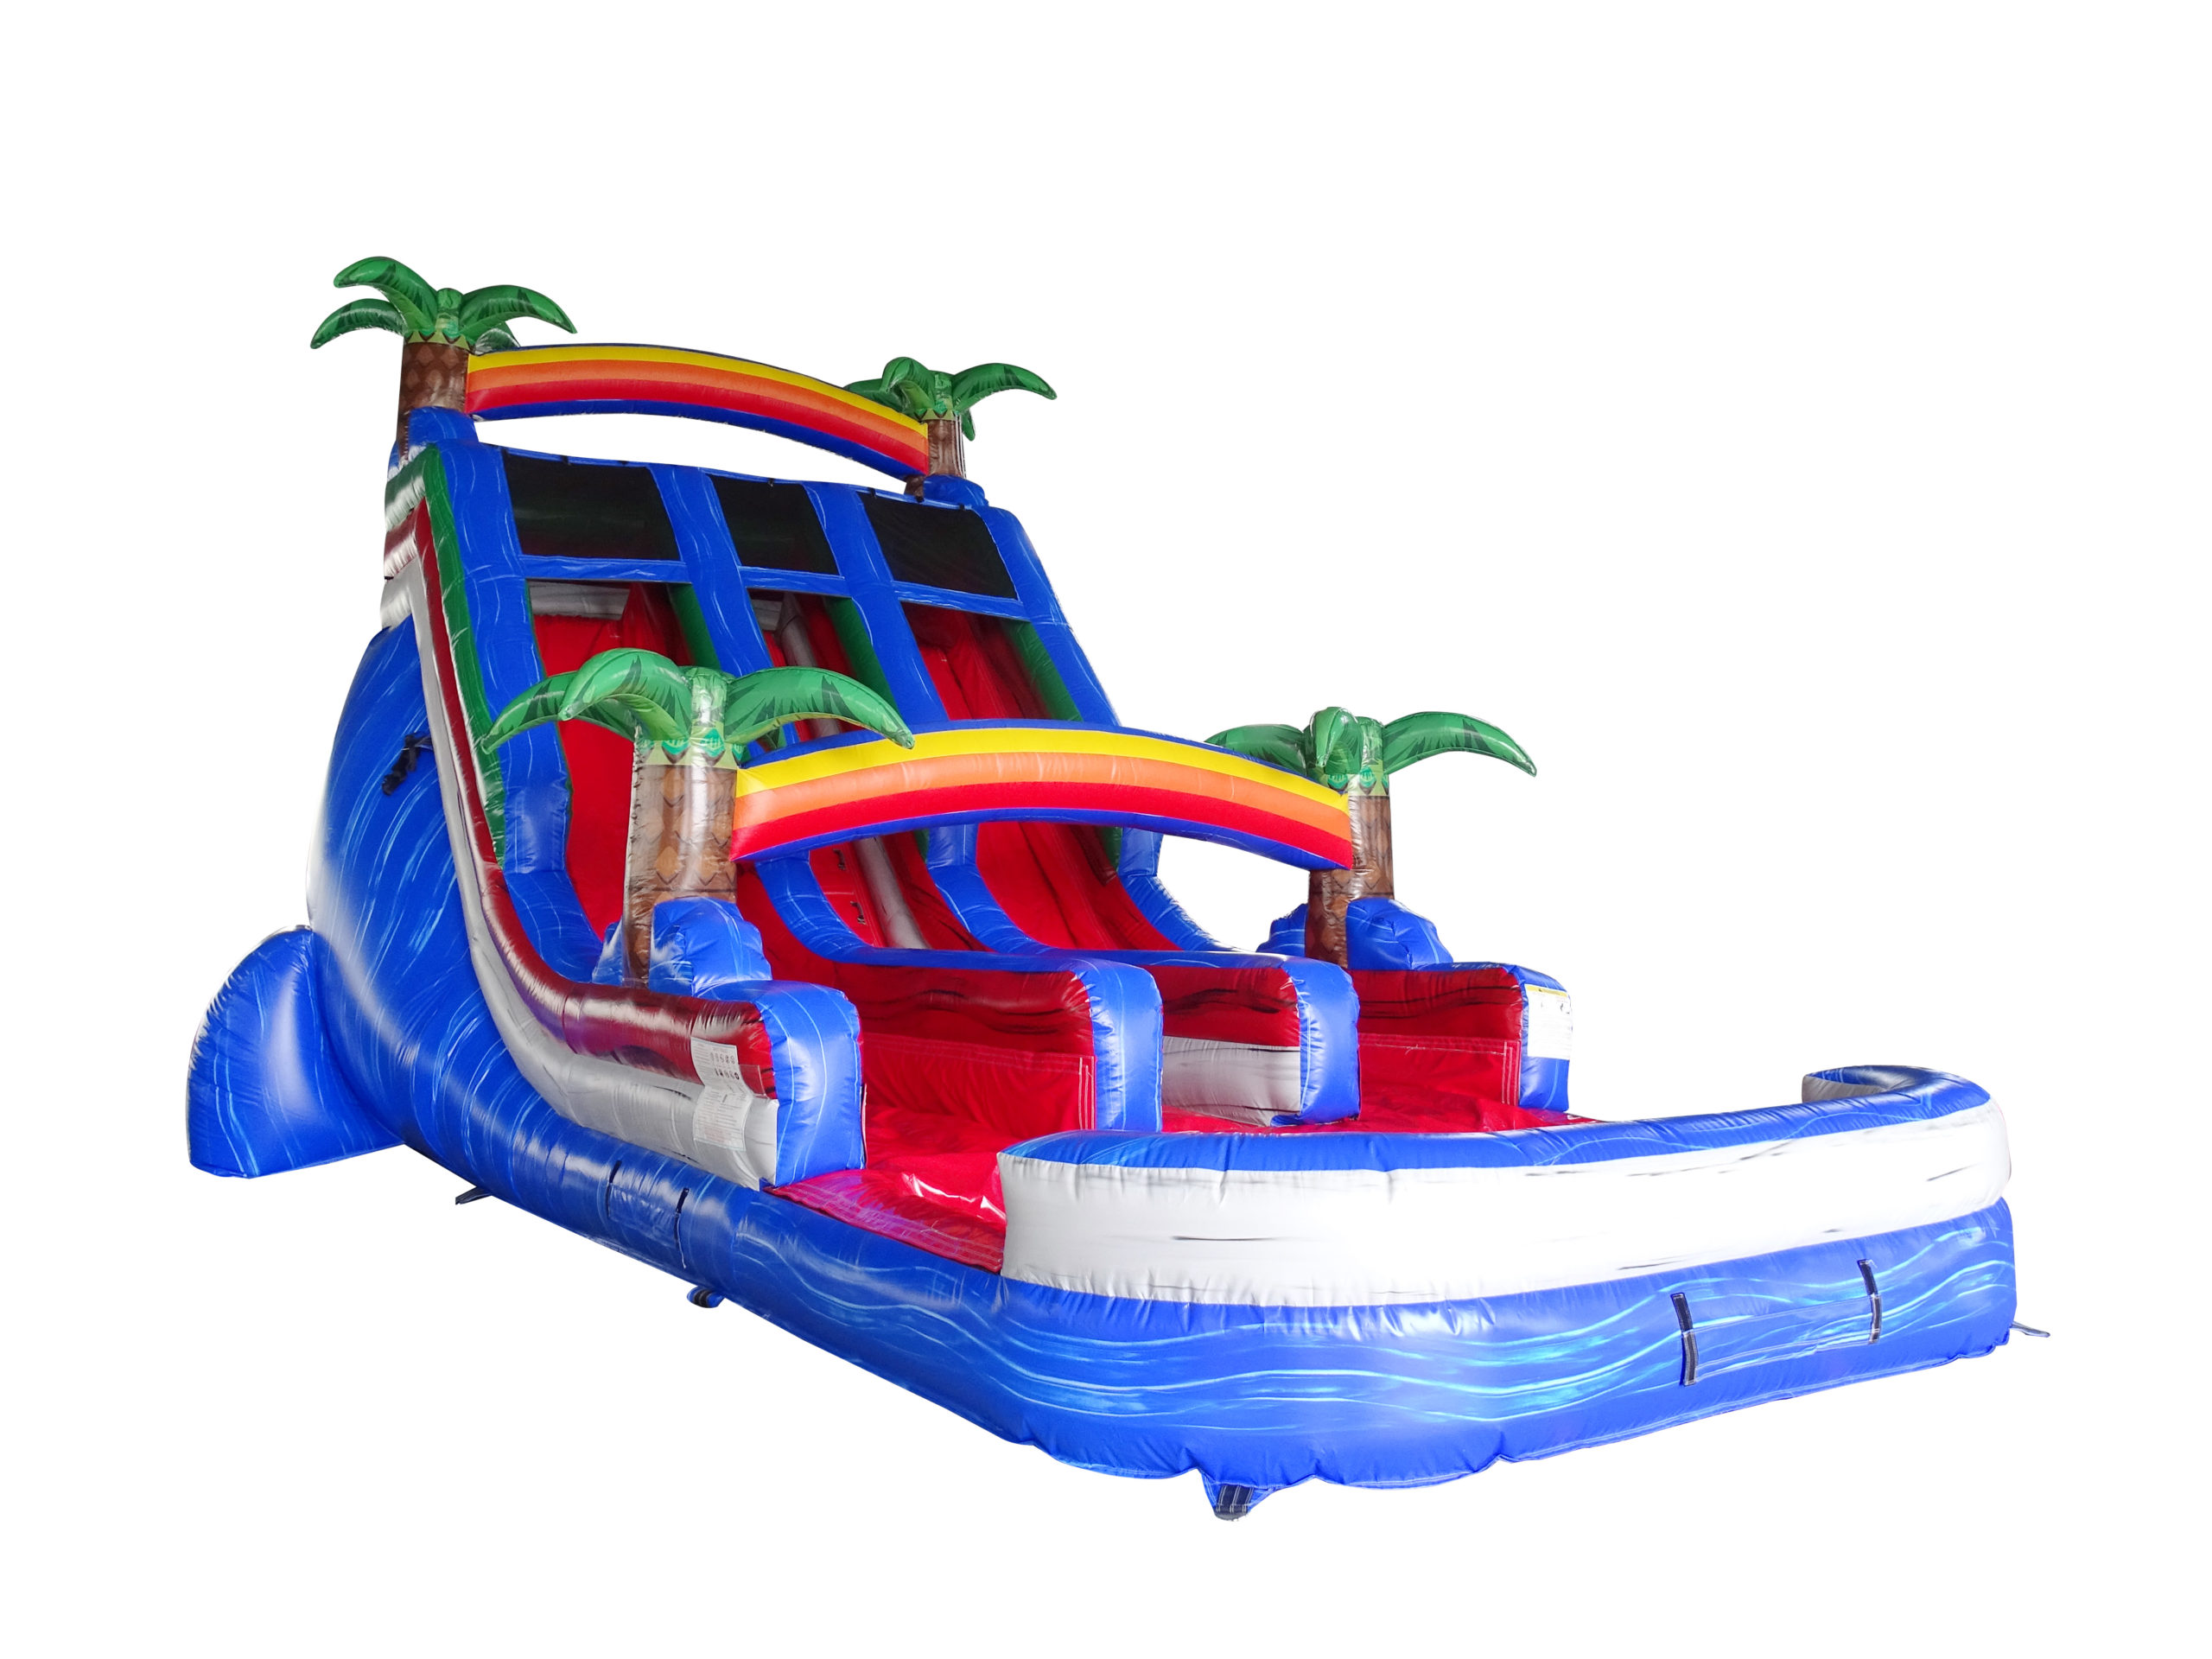 18ft-Baja-Splash-1-2-scaled